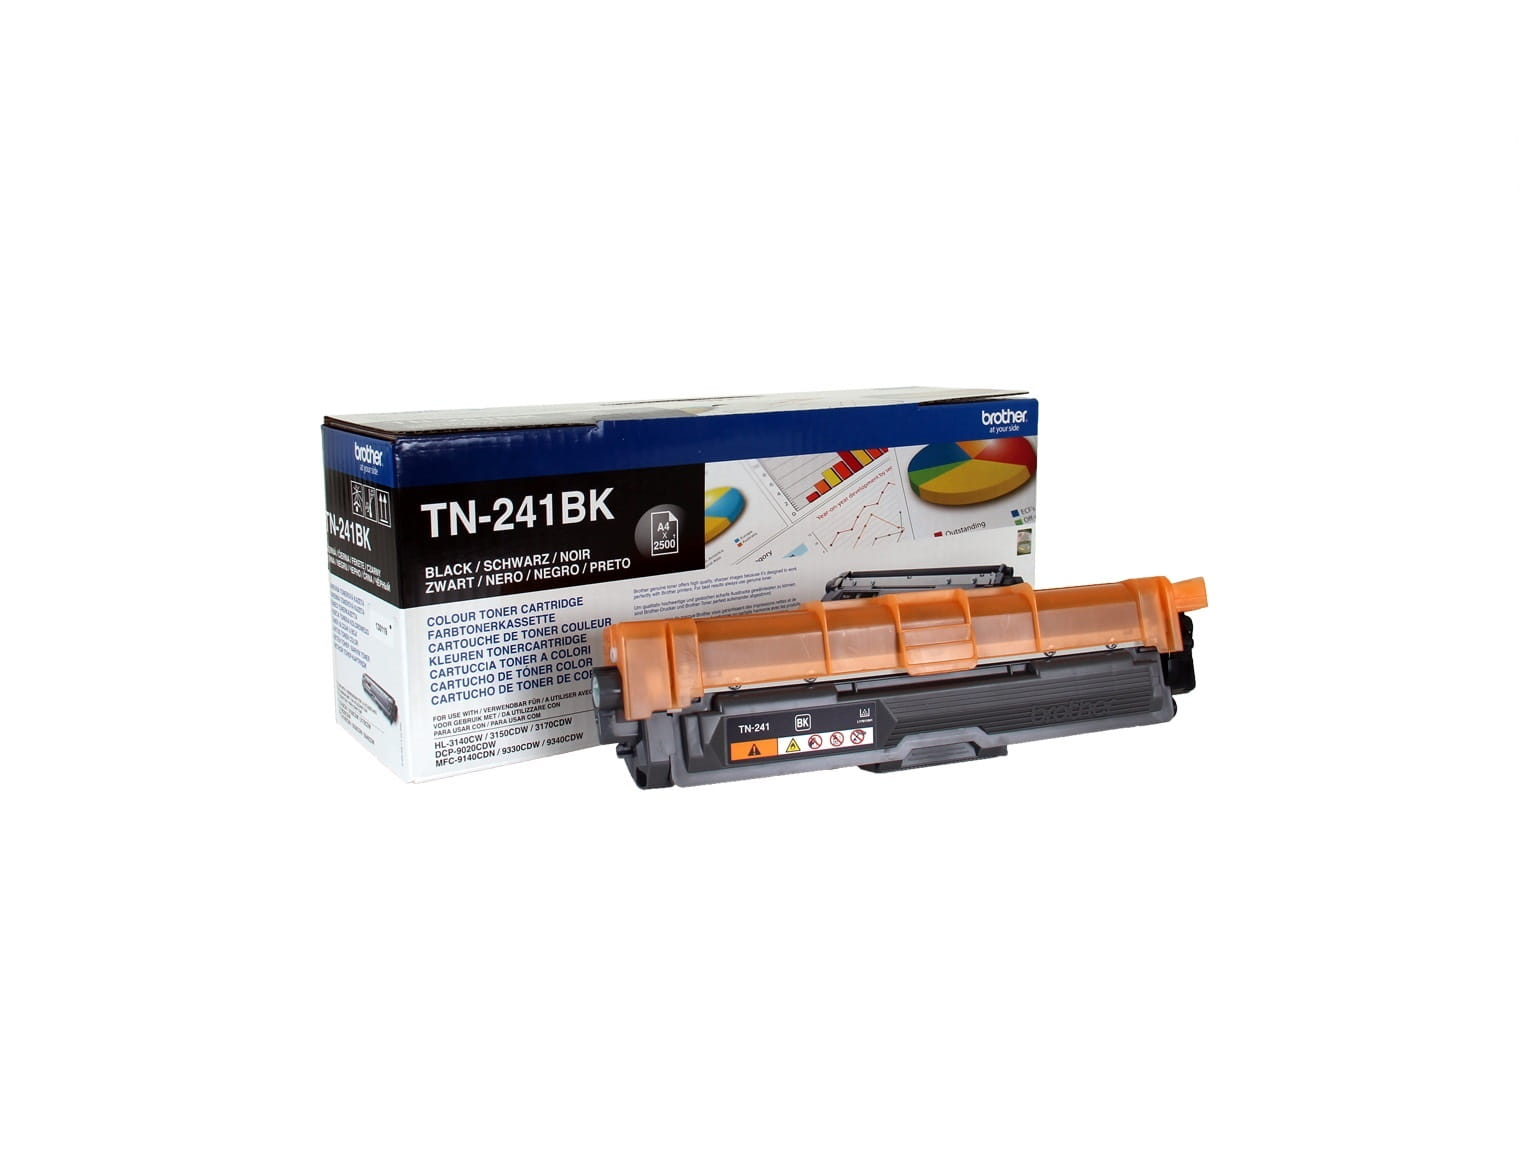 Toner originale nero Brother TN241BK con 10% di sconto